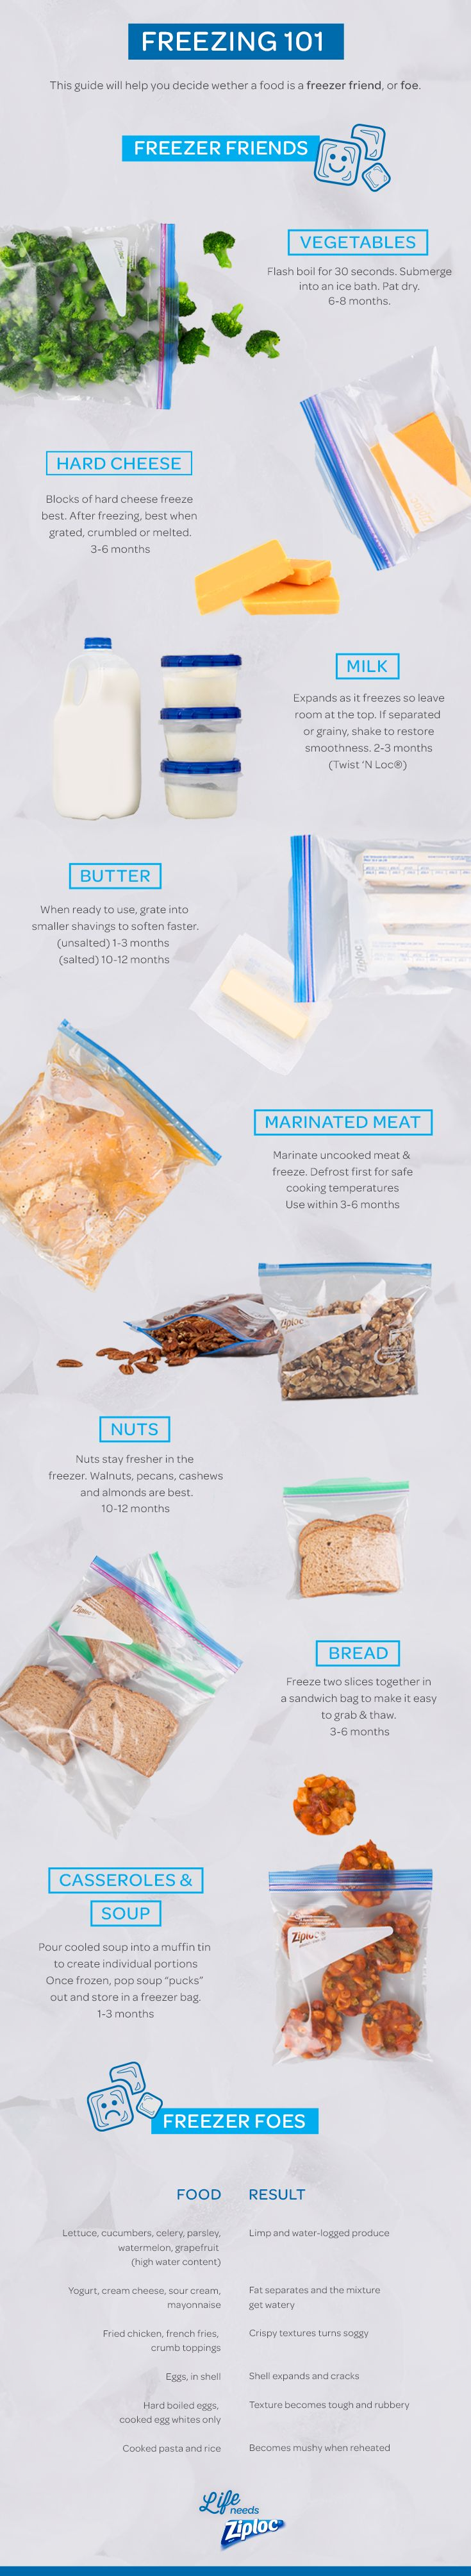 Our top tips for storing, prepping and freezing like a pro.